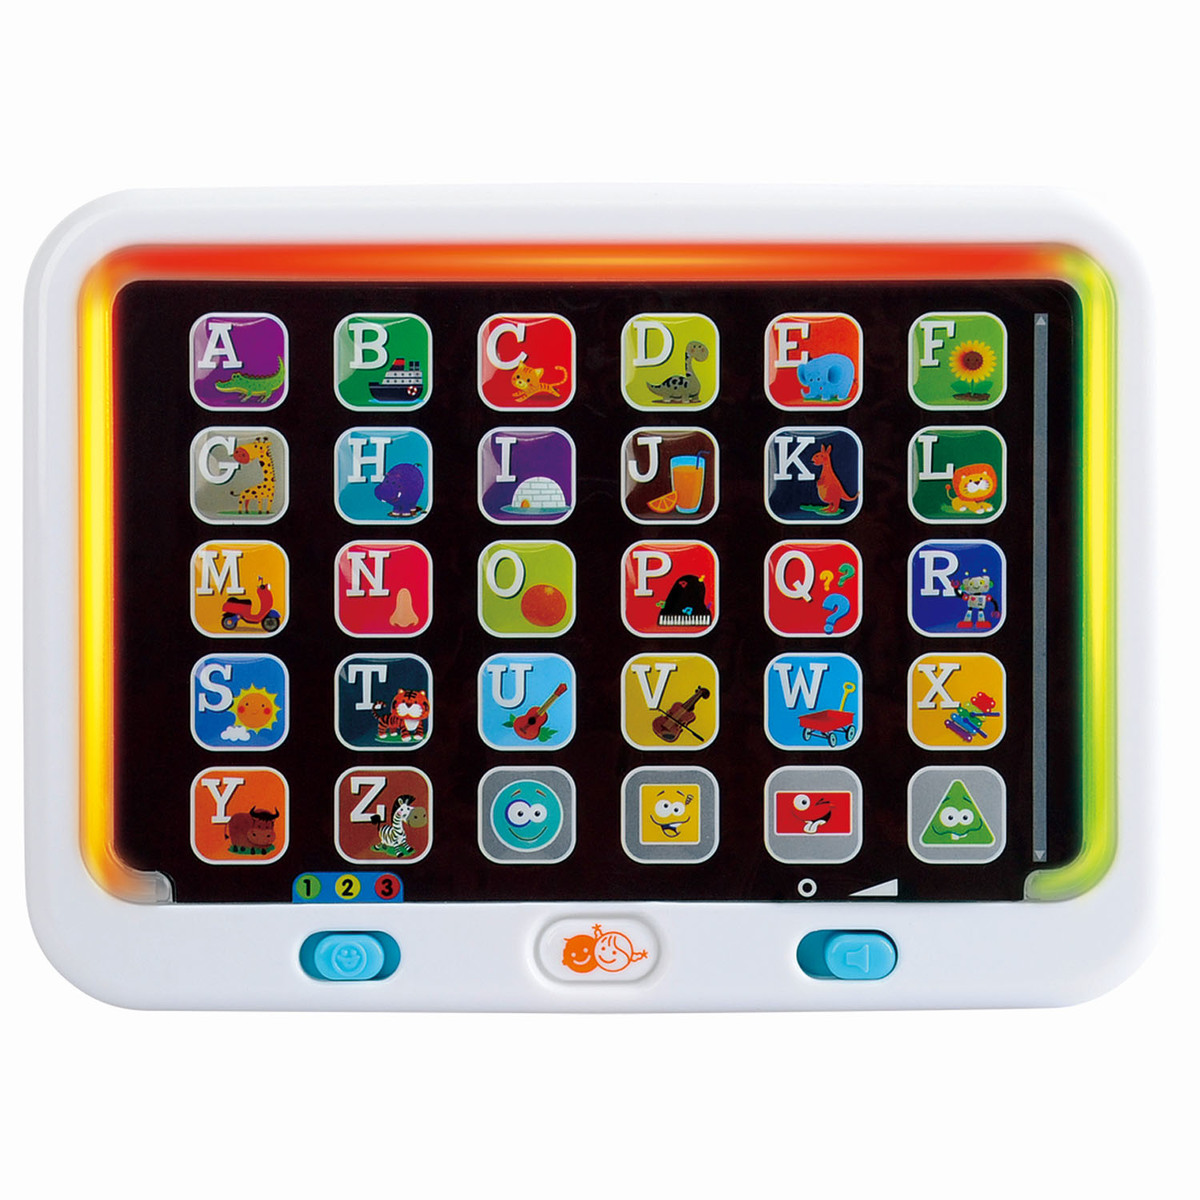 Tablette d'apprentissage bilingue